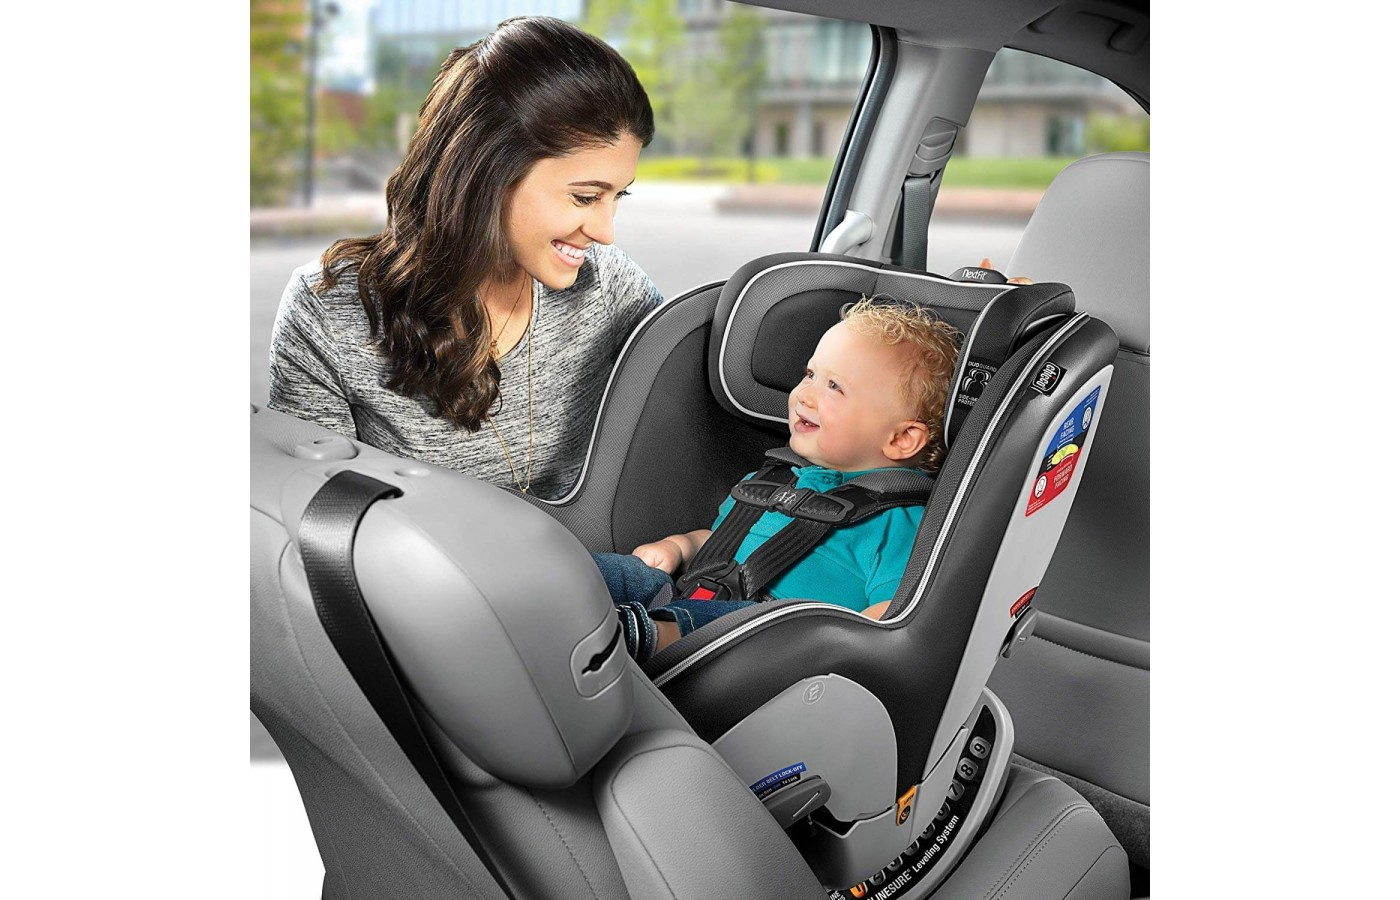 It's a convertible car seat.